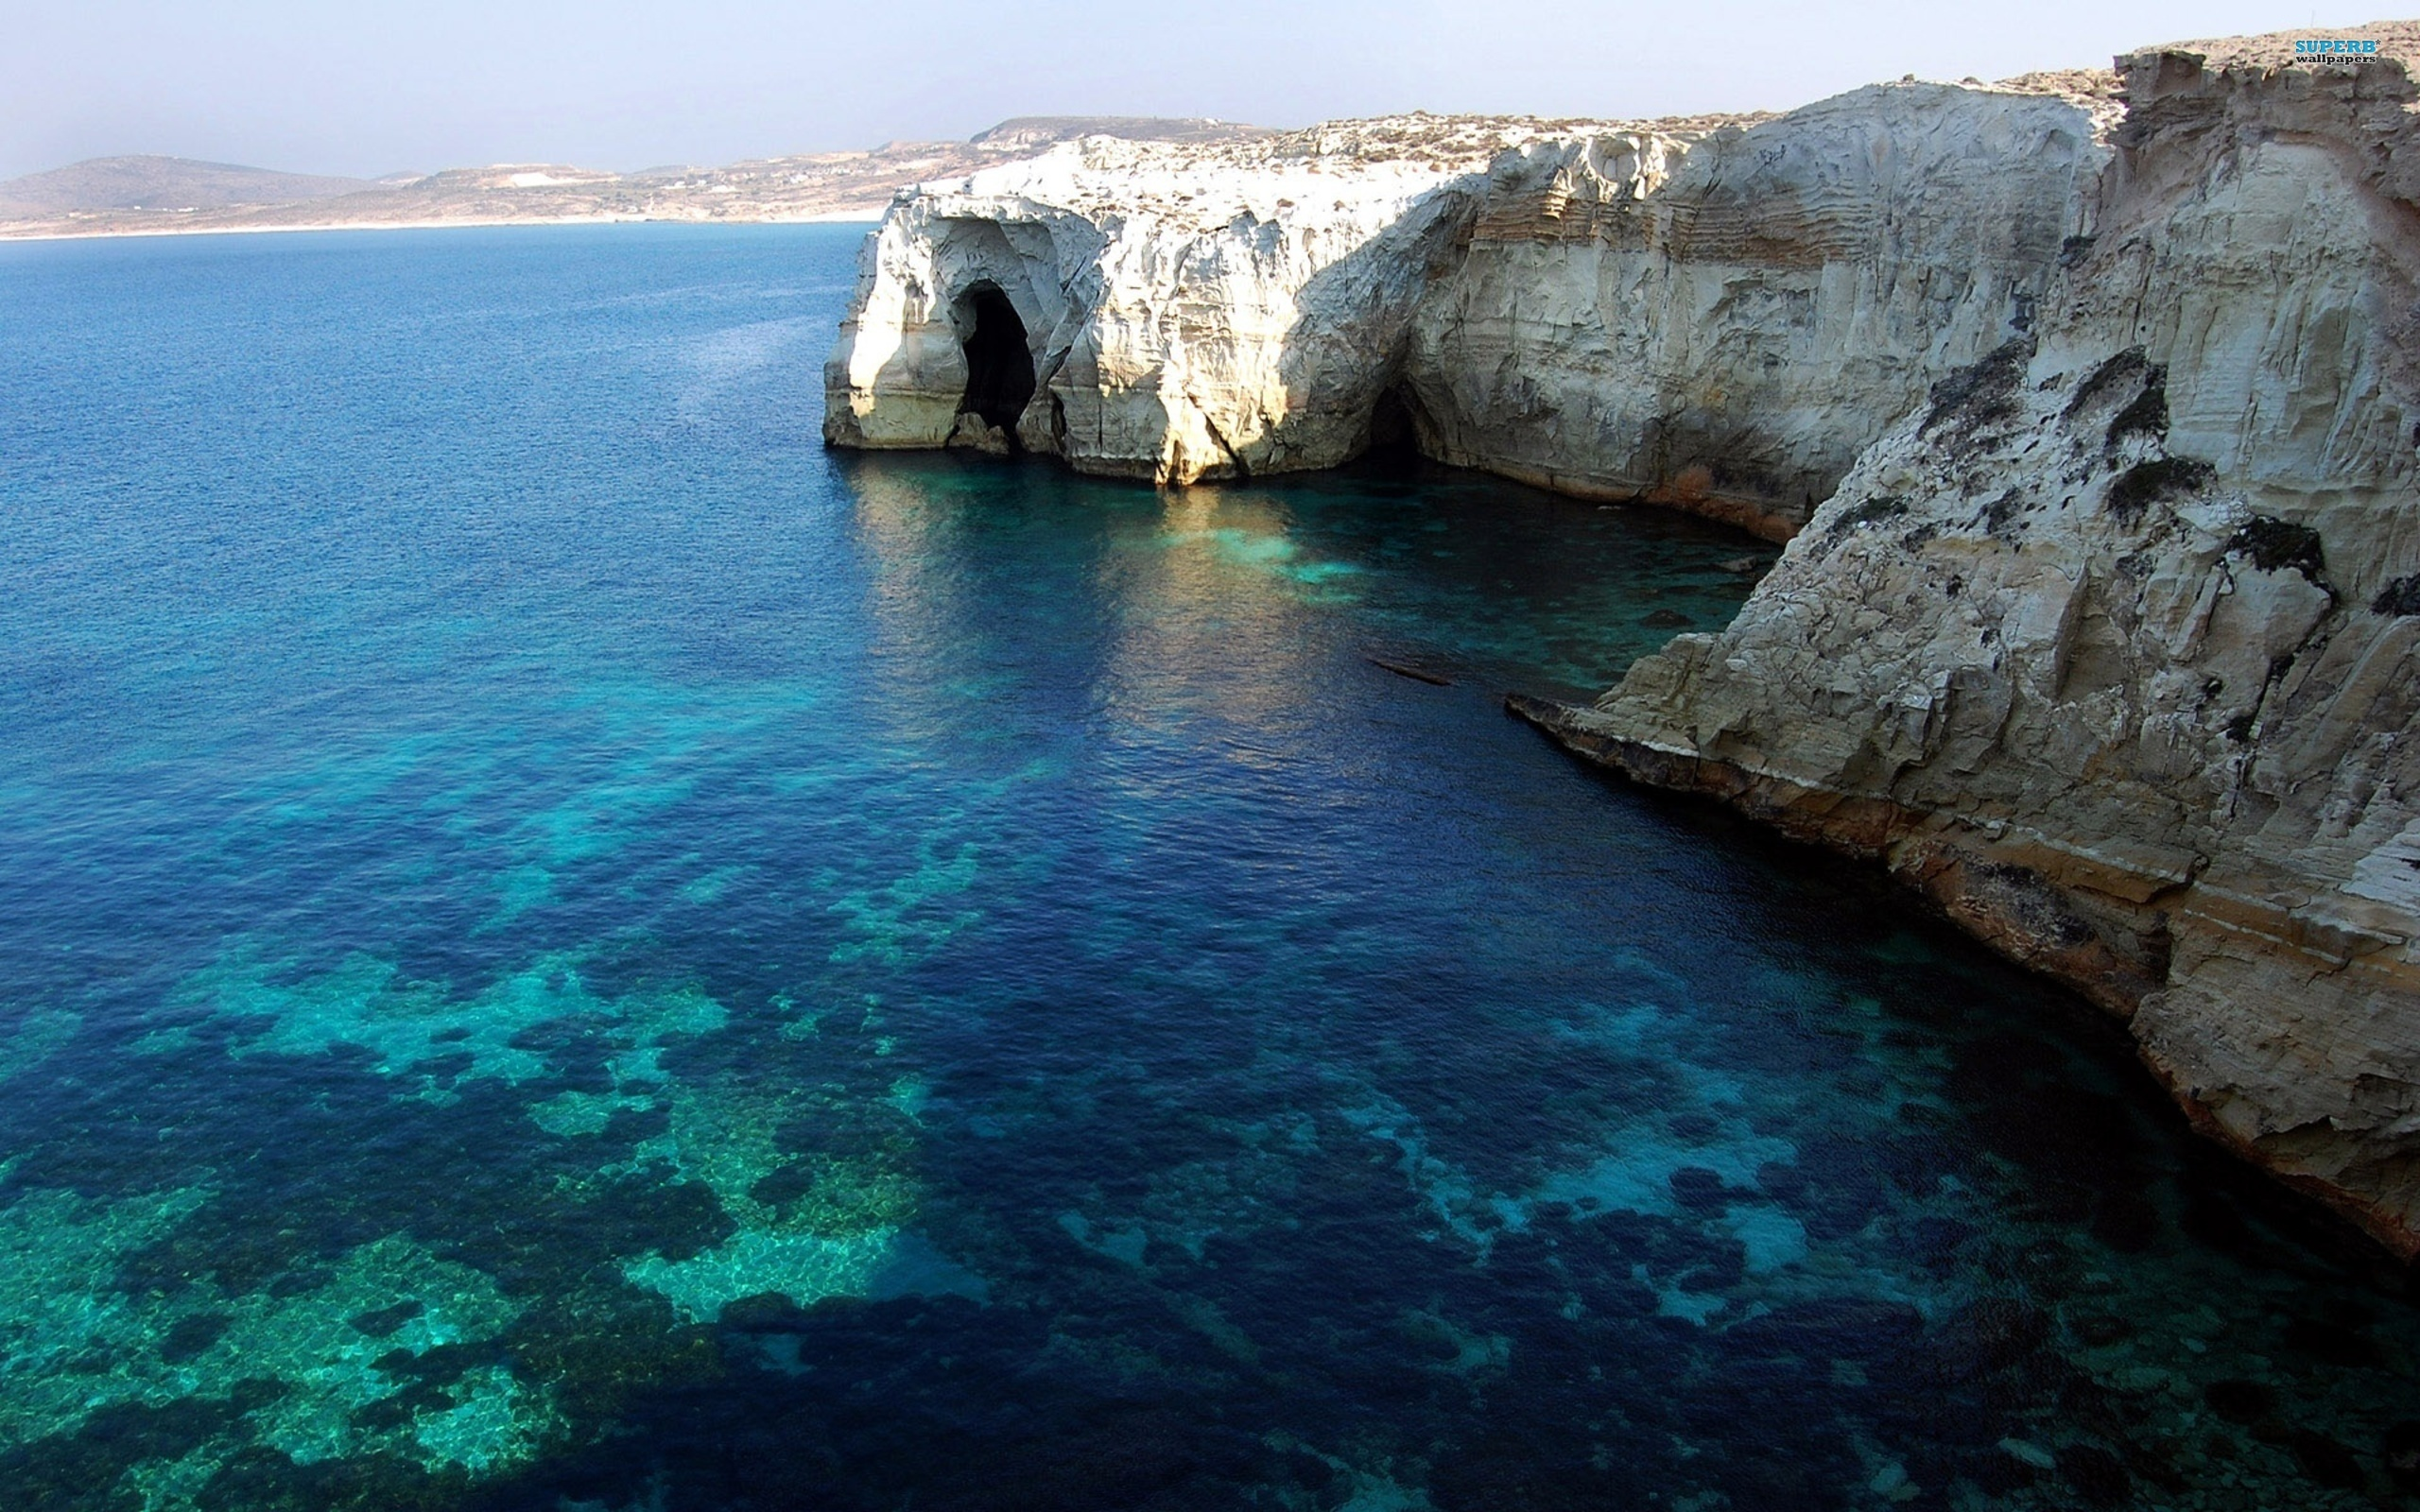 Description: The Wallpaper above is Milos Island Greece Wallpaper in Resolution 2560x1600. Choose your Resolution and Download Milos Island Greece Wallpaper